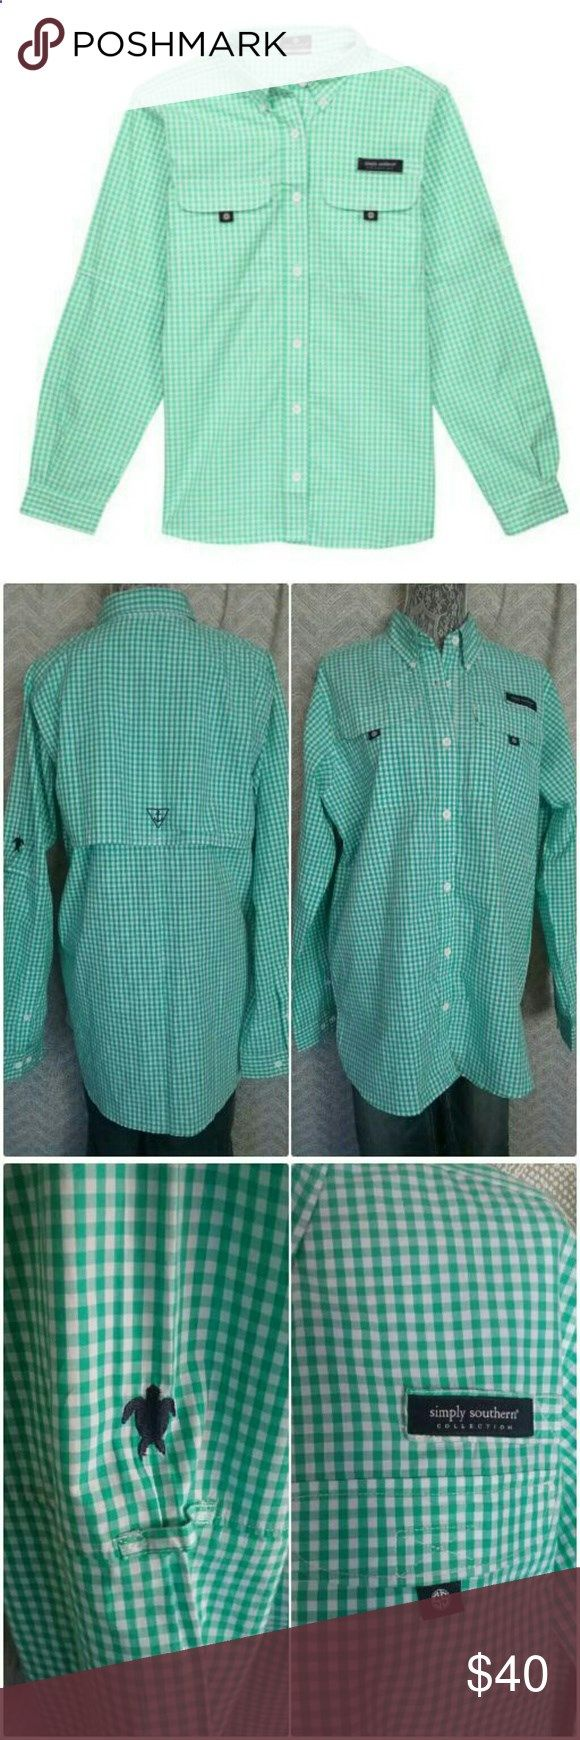 Fishing Shirts - Simply Southern Fishing Shirt XL New with tags Simply Southern Fishing Shirt with button down collar  vented back. Aqua  White gingham check with embroidered logos and double pockets on front, size XL Simply Southern Tops